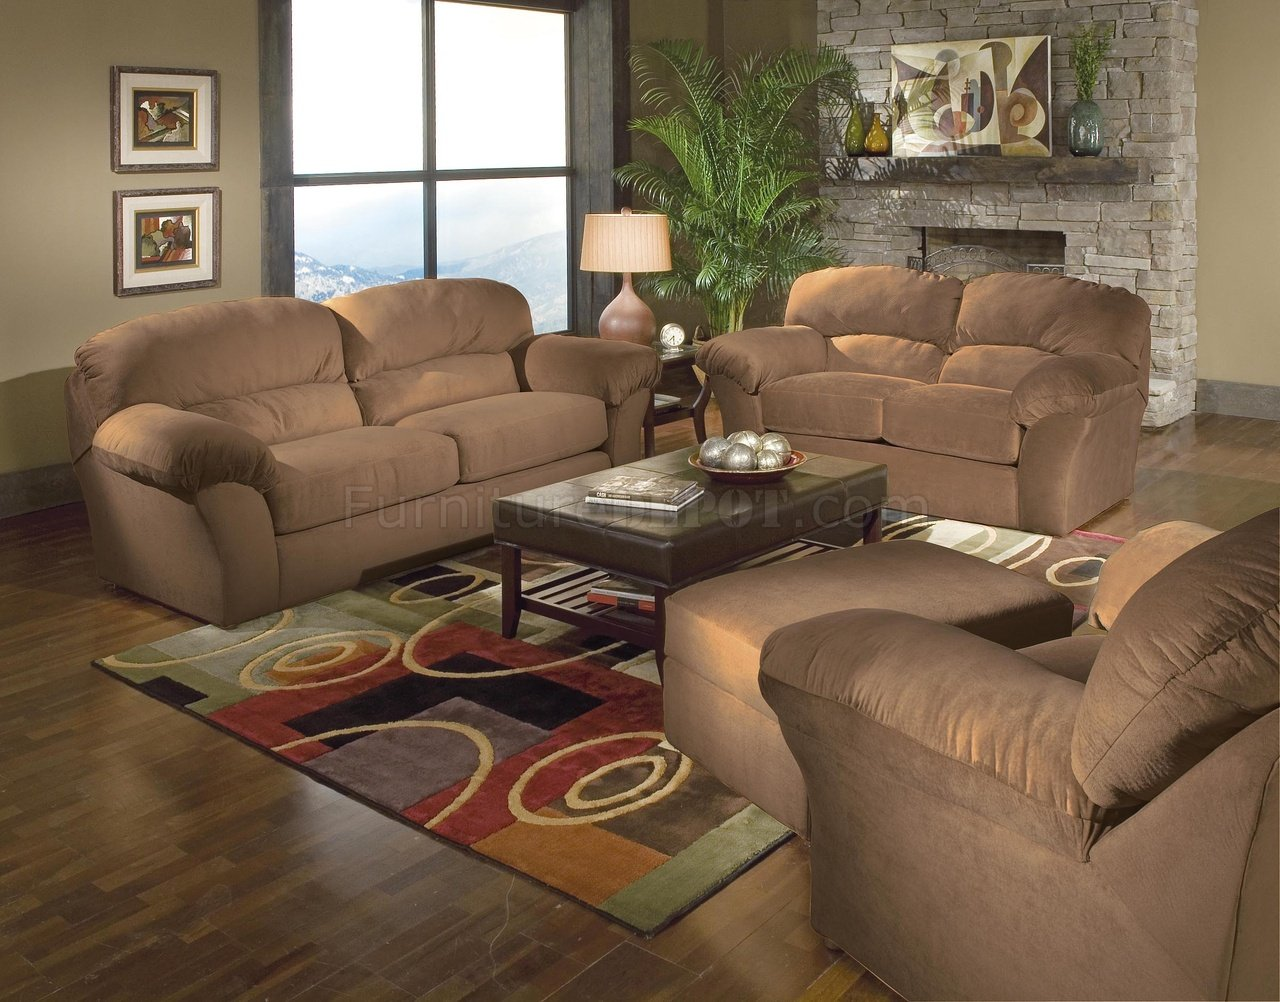 Saddle mircro suede casual living room w sewn on arm pillows for Casual living room chairs